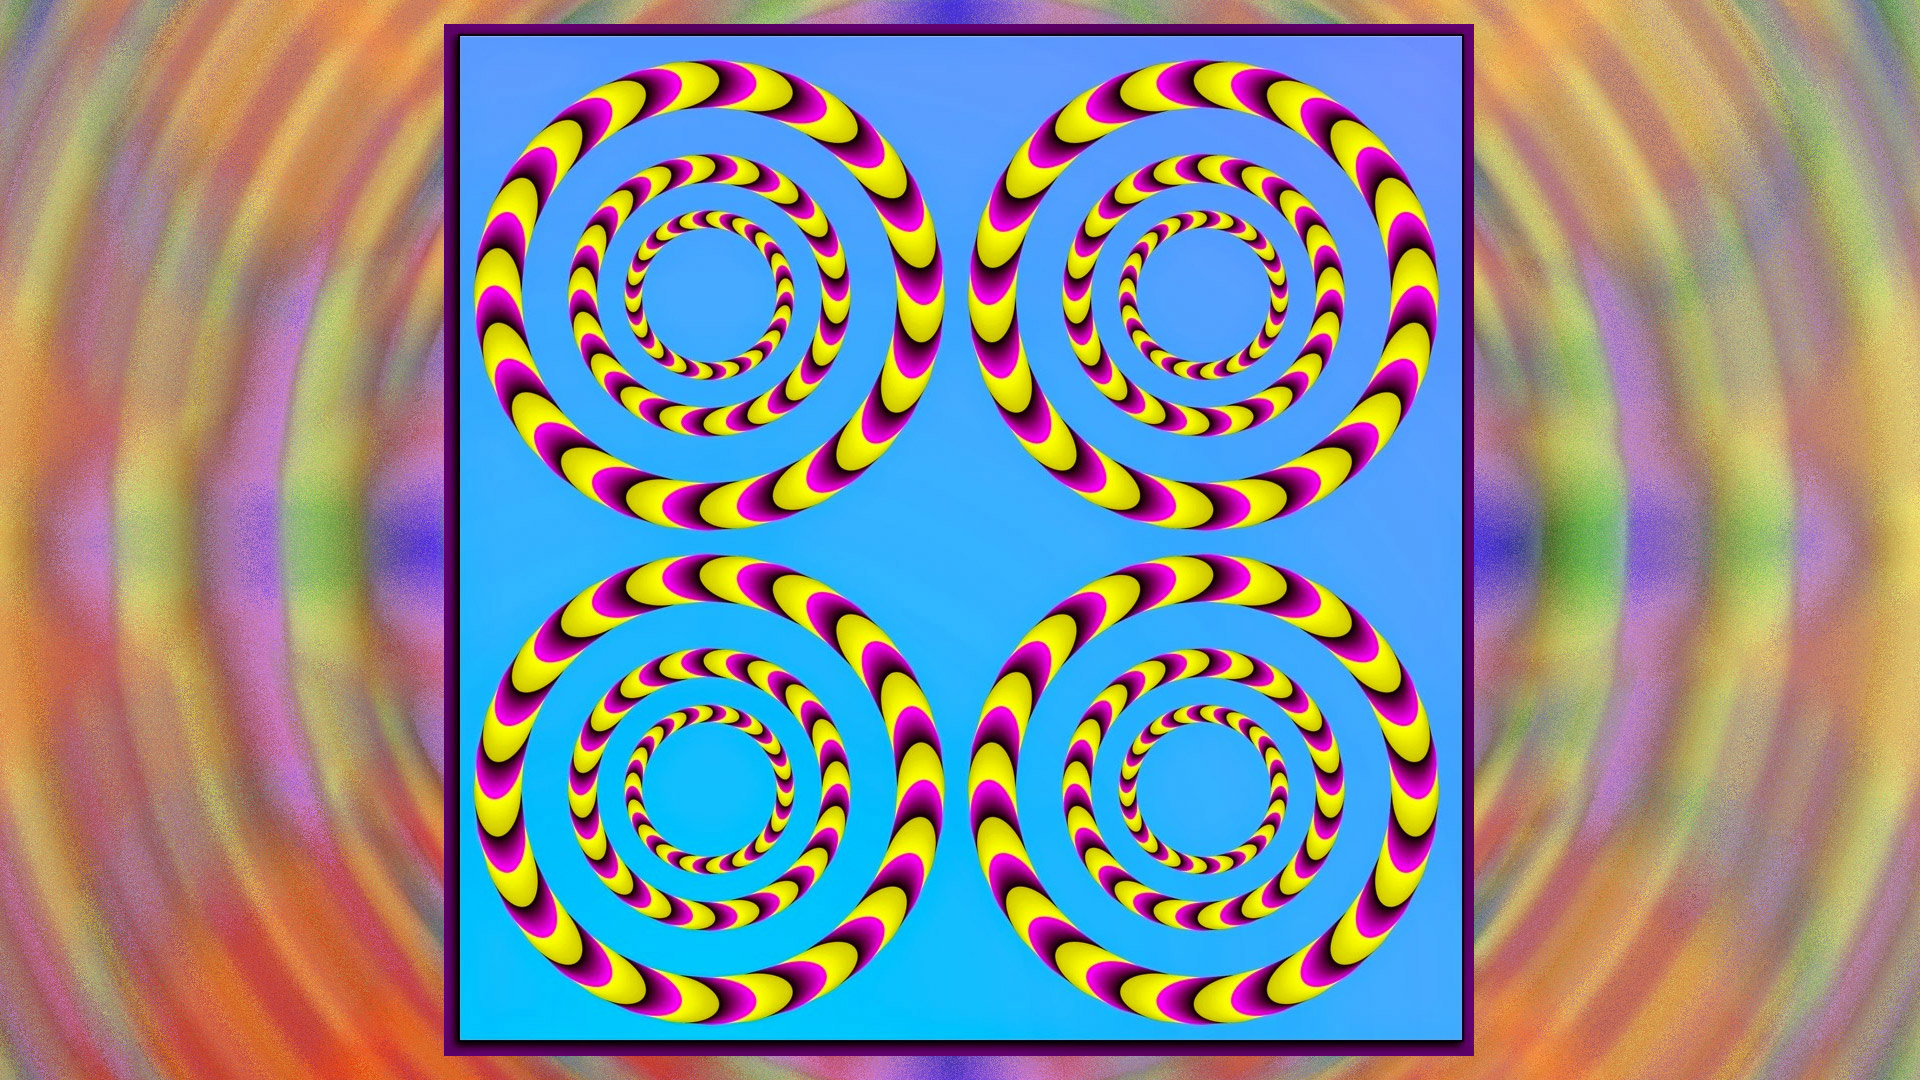 Illusion Wallpaper 3d Trippy Optical Illusions That Appear To Be Animated Use